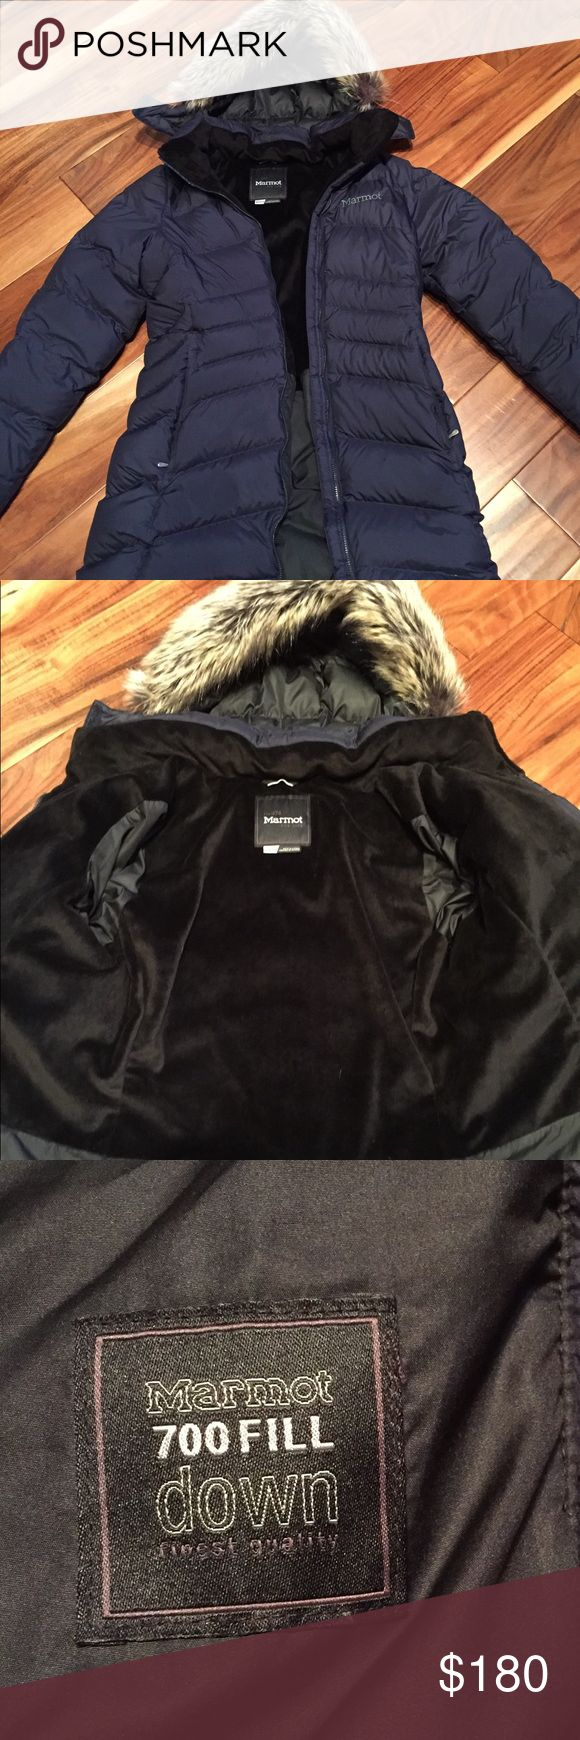 Marmot Montreal in Midnight Navy-like new!! I wore this for just a couple of weeks last season, and decided I need a bigger size. It is in perfect condition! No rips, tears, snags, or stains. Smoke-free home. Will wash before shipping. Will consider reasonable offers! Marmot Jackets & Coats Puffers